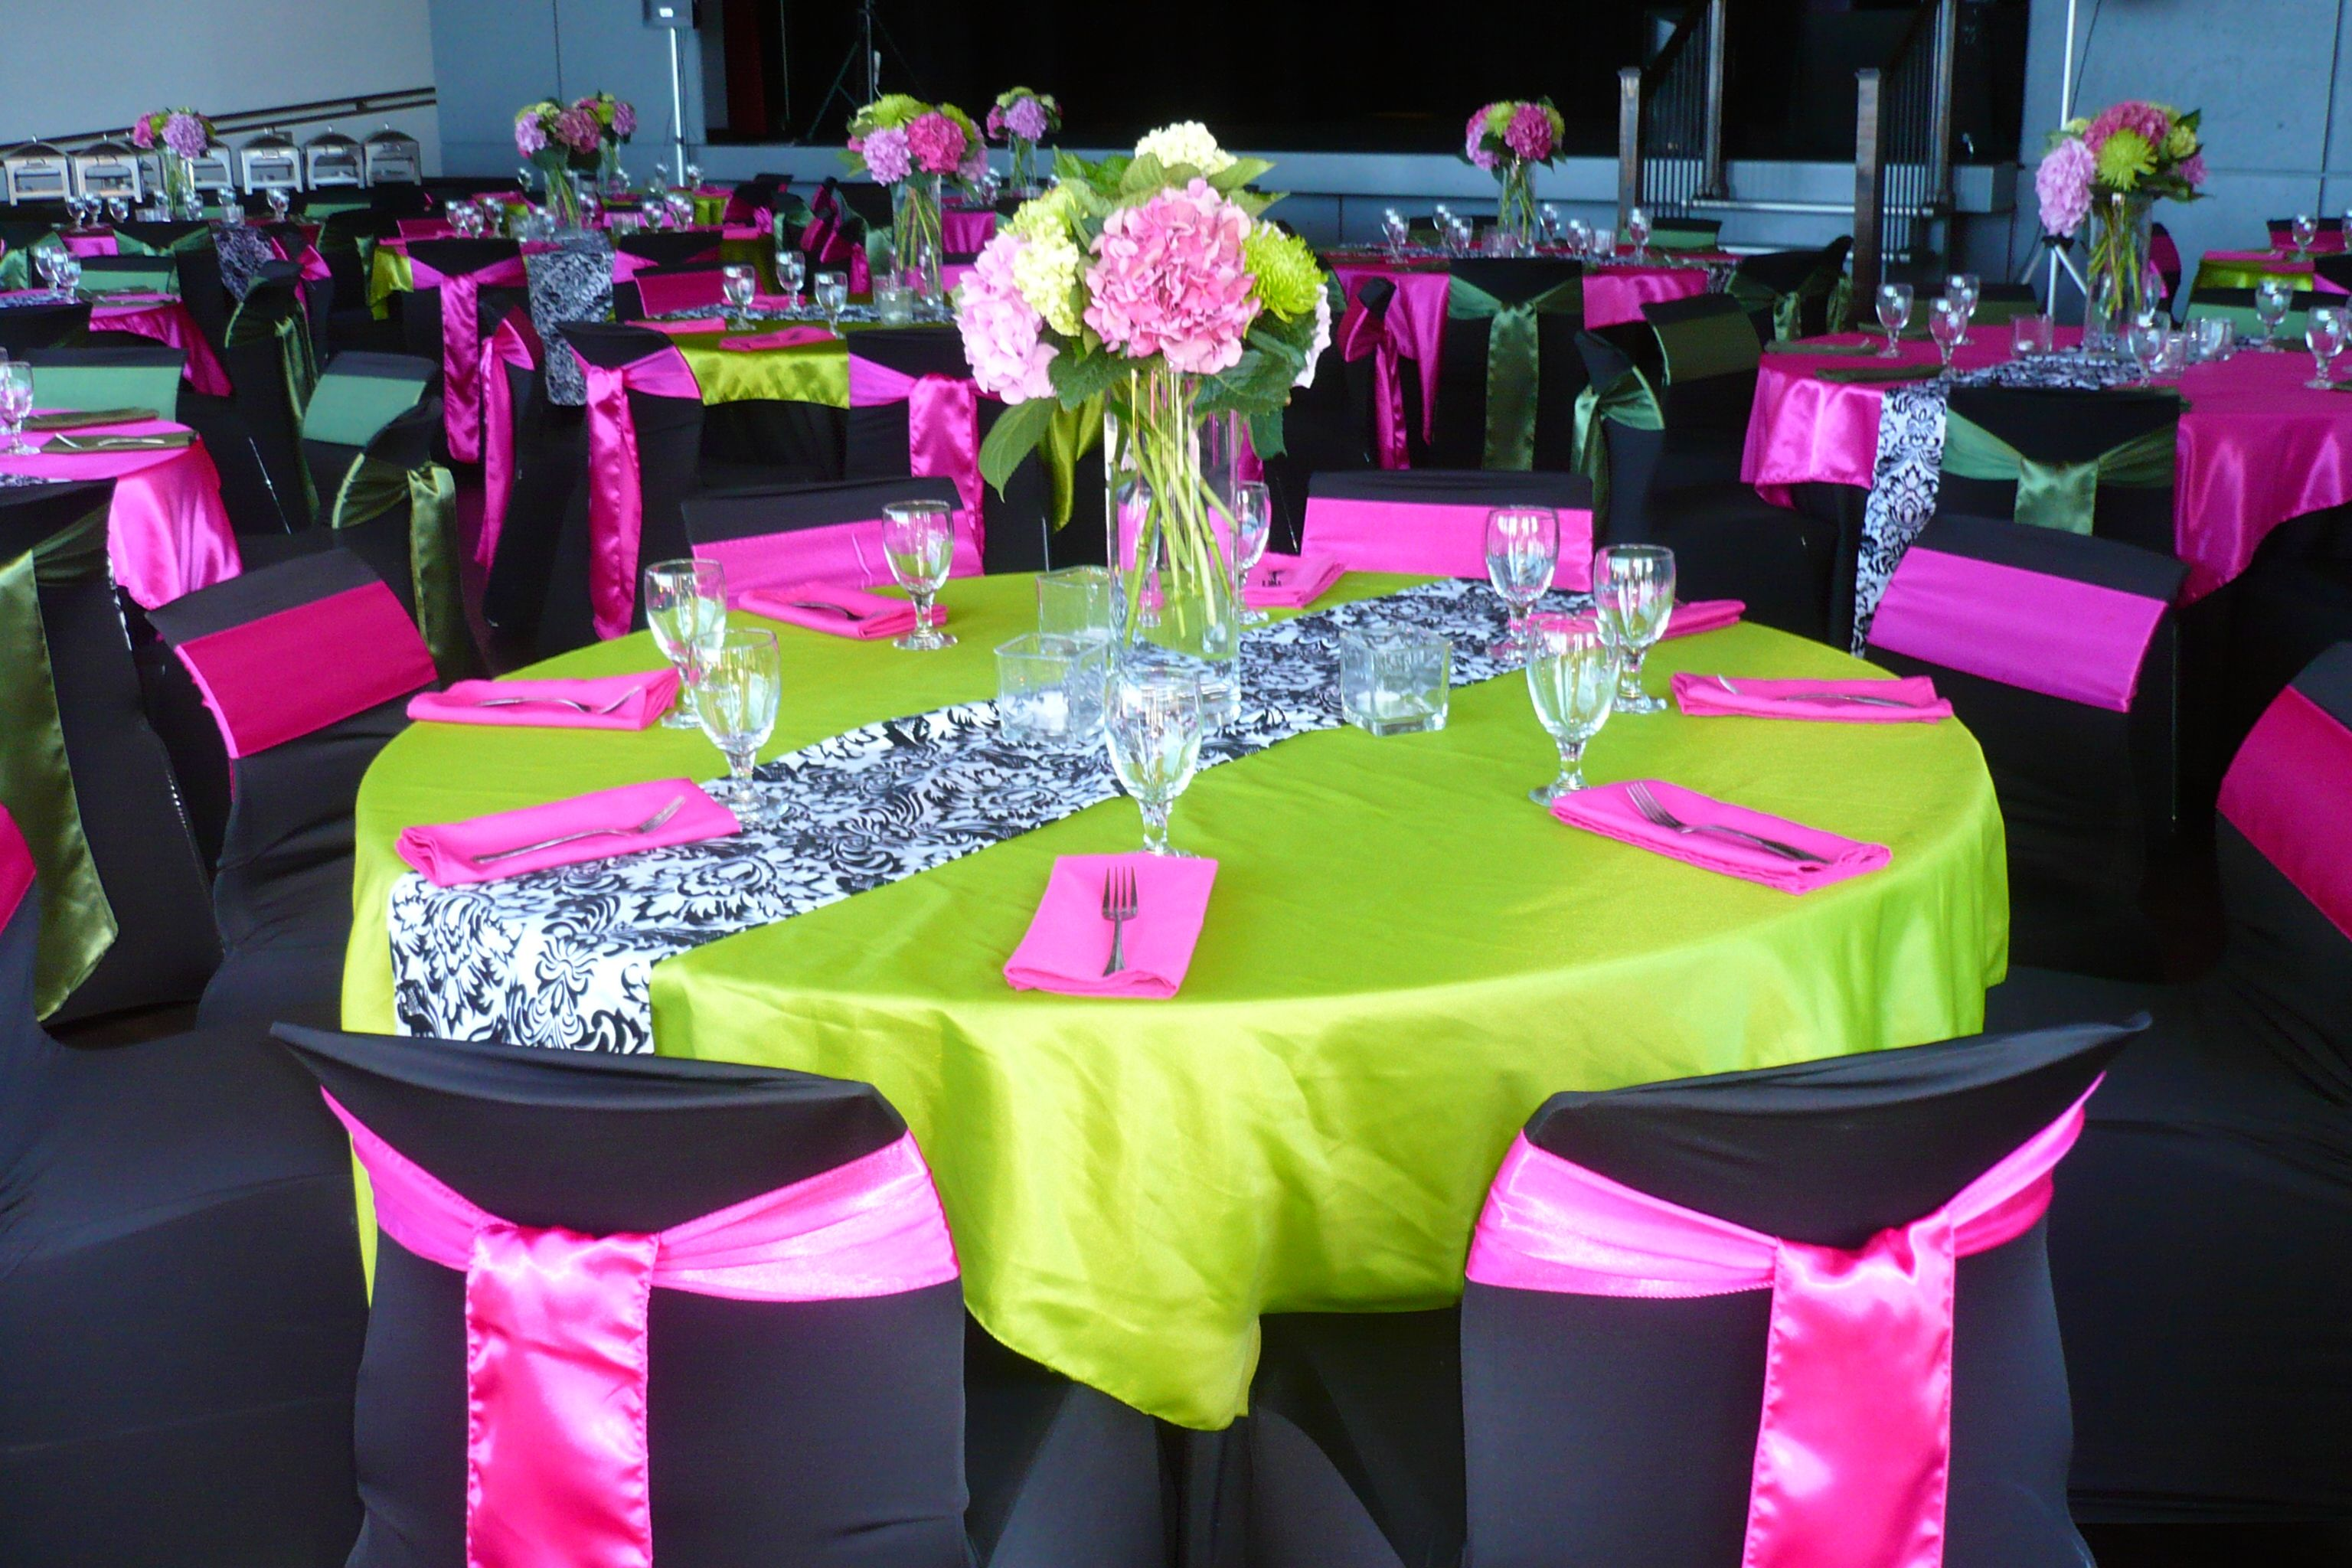 Wedding decorations green  Greens and Fuchsia Wedding Linens  Green Themed Weddings